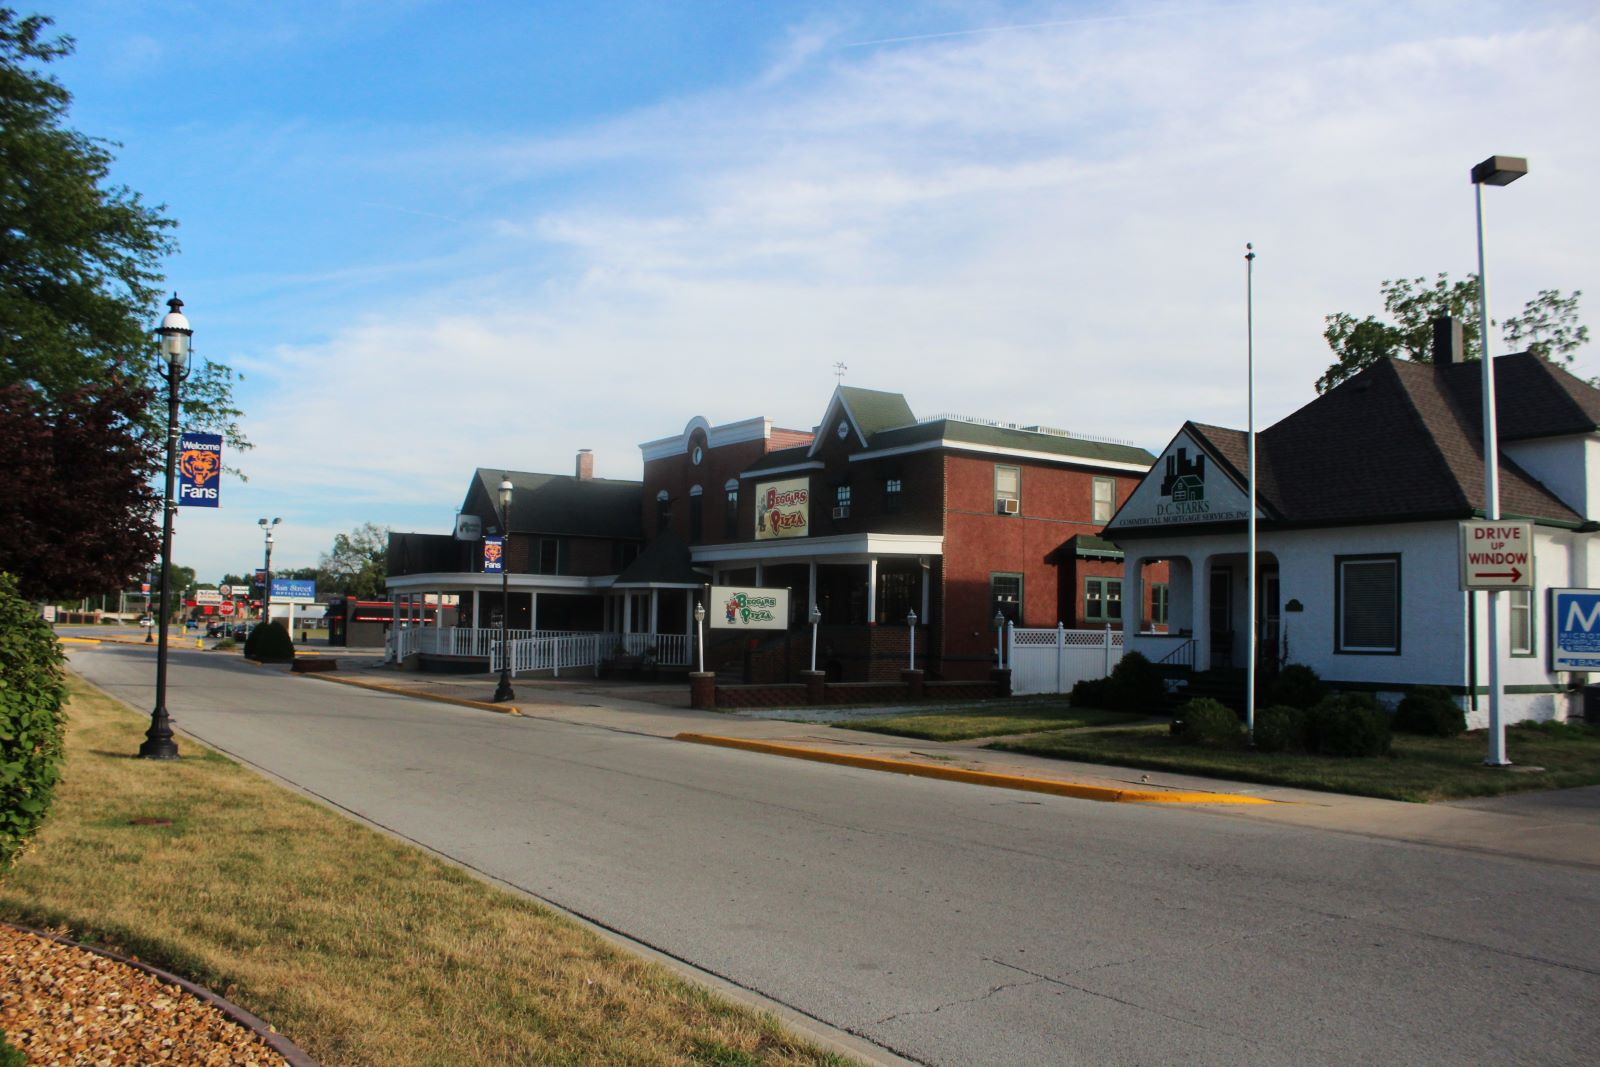 street view of beggar's pizza in bourbonnais illinois